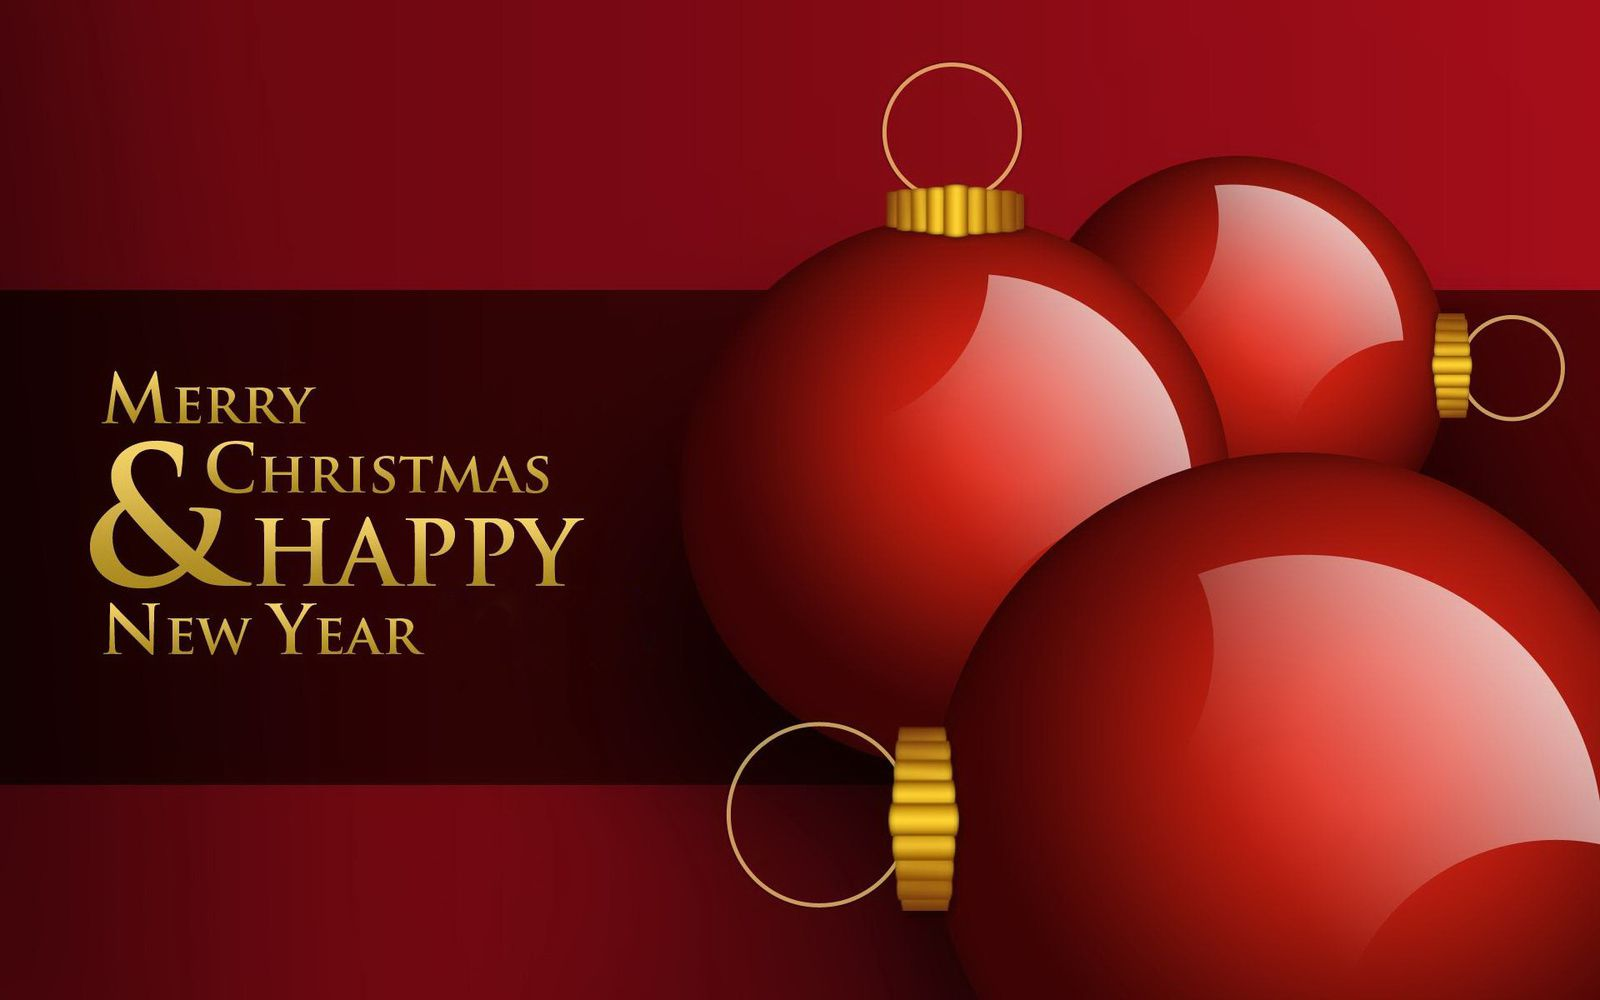 Merry Christmas Happy New Year Noël 2015 Wallpaper Free Le